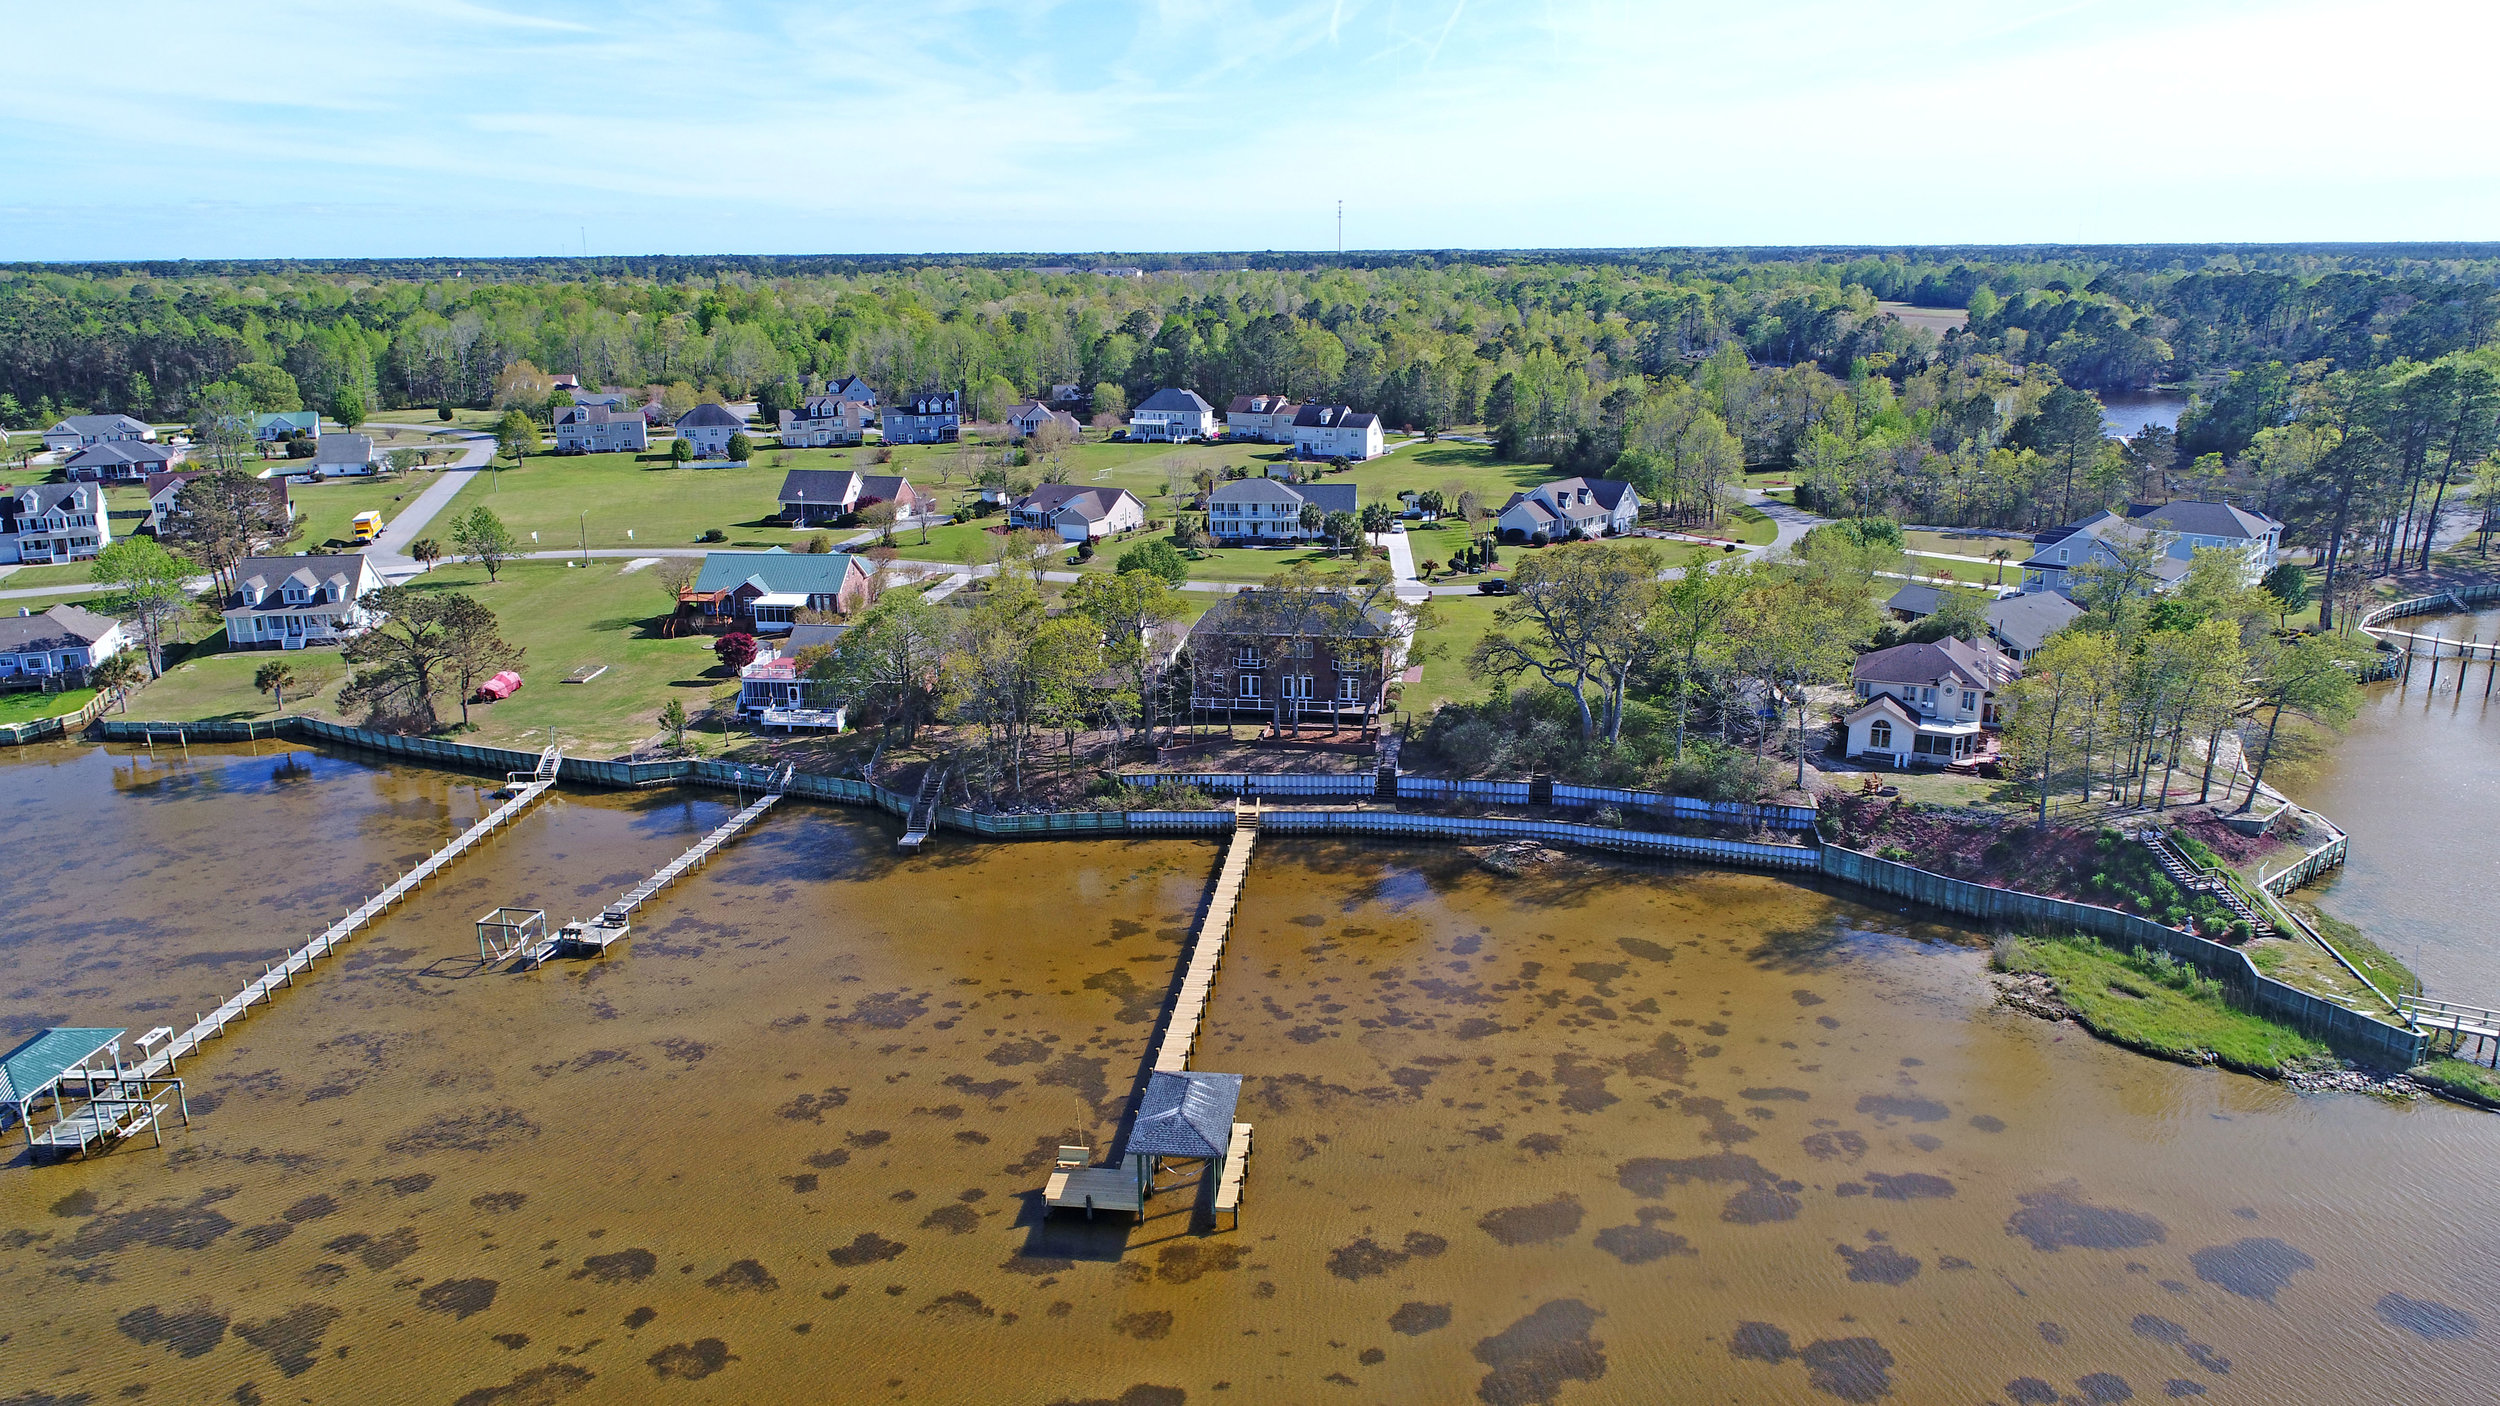 710 Willbrook Cir Sneads Ferry-print-063-63-DJI 0053-4200x2363-300dpi.jpg